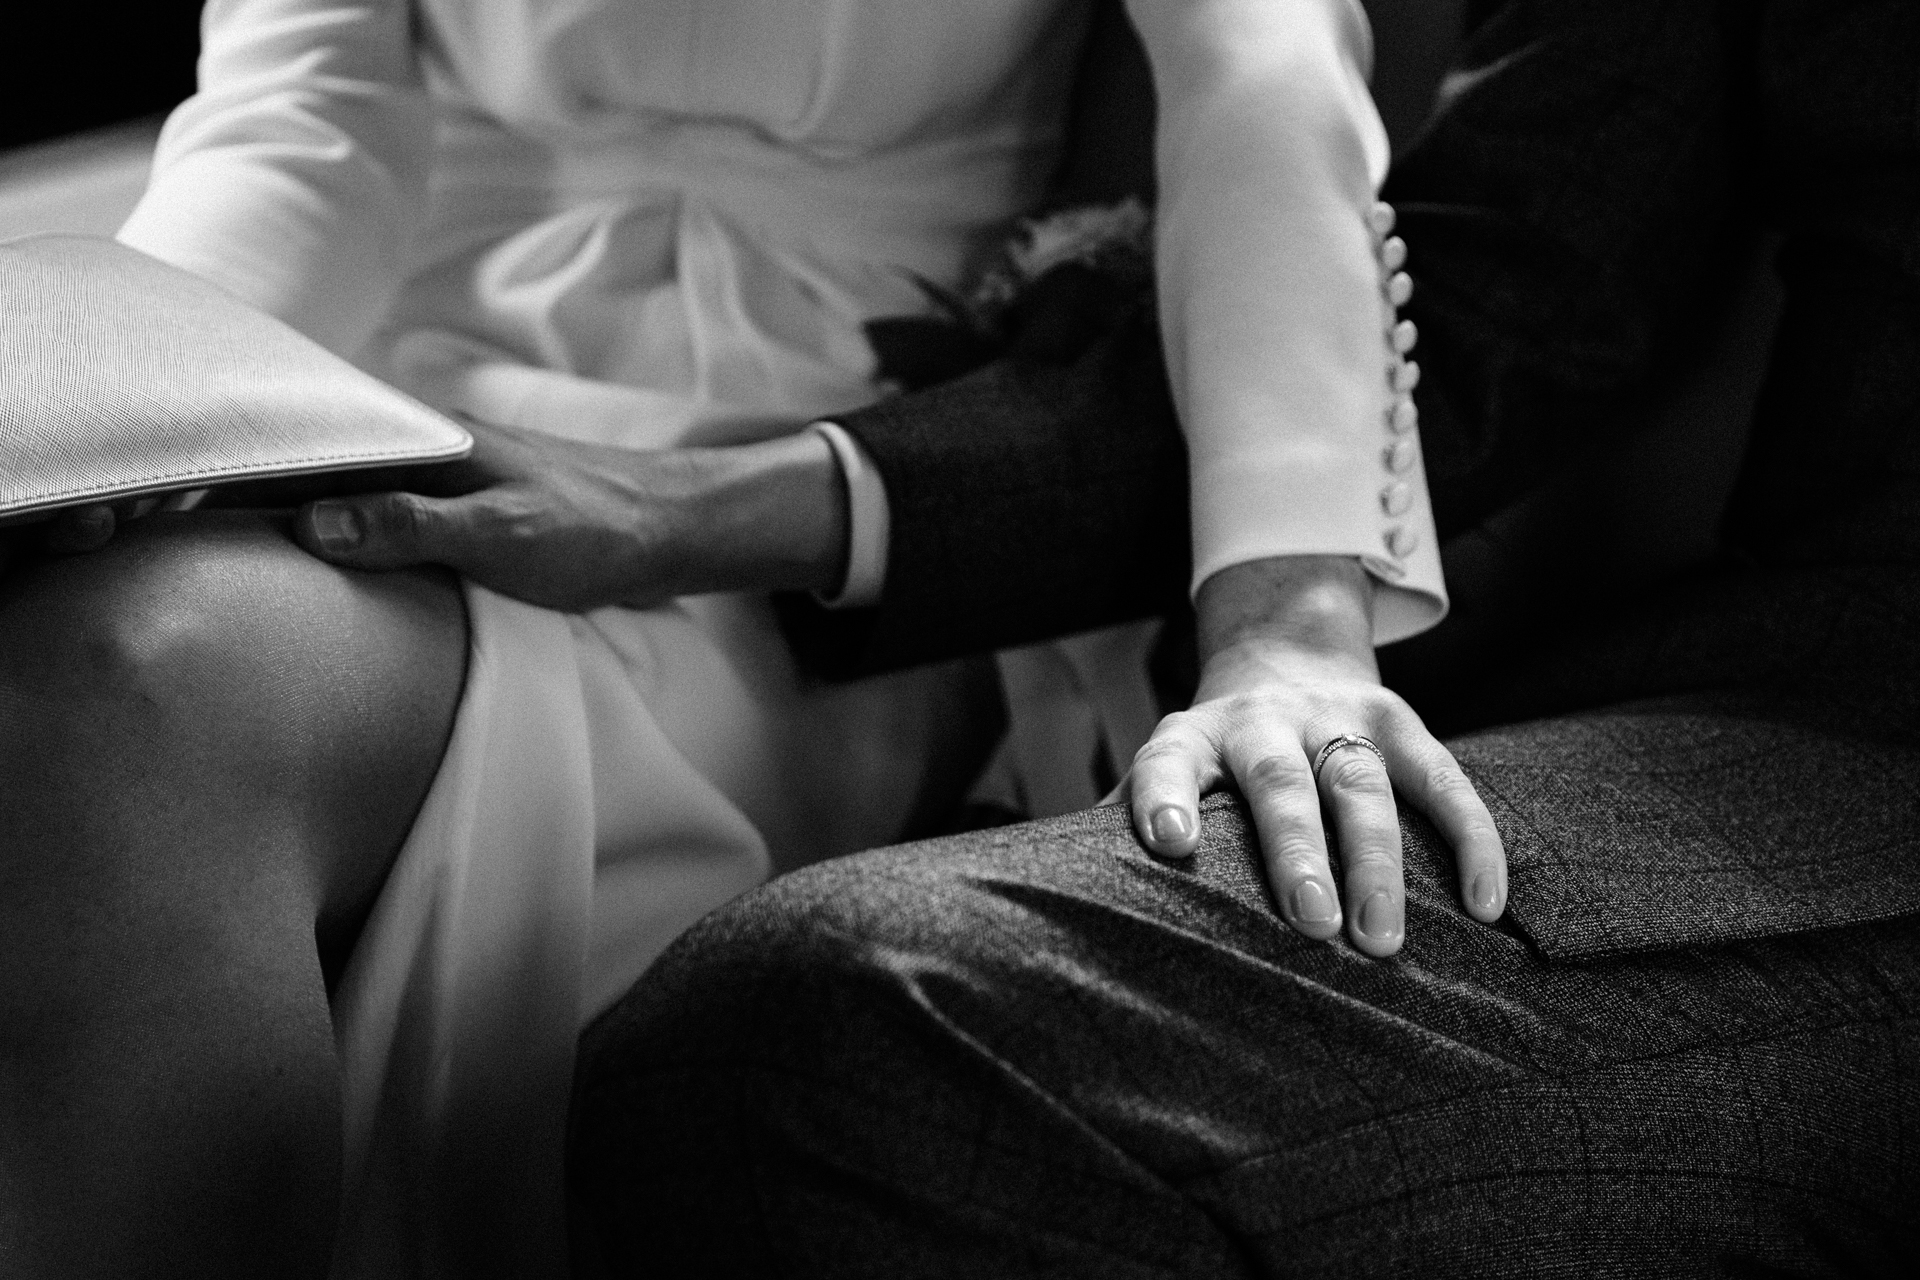 Central London Elopement Detail Image of Hands | In the taxi with them, laughter and jokes are shared, but the love and intimacy is still clear to see, with hands touching each others laps